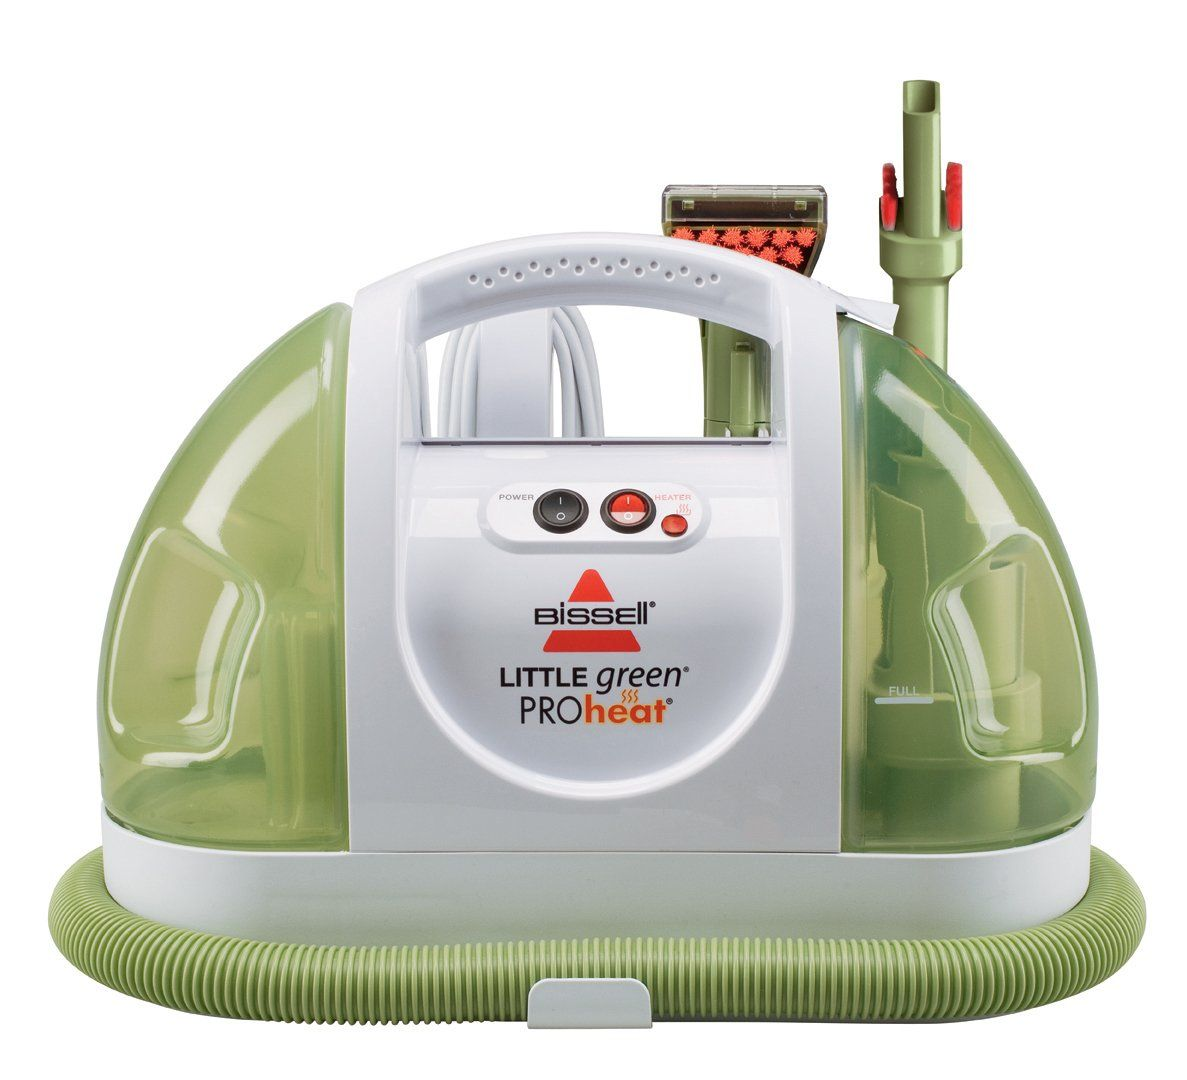 Bissell Little Green Proheat Compact Multi Purpose Carpet